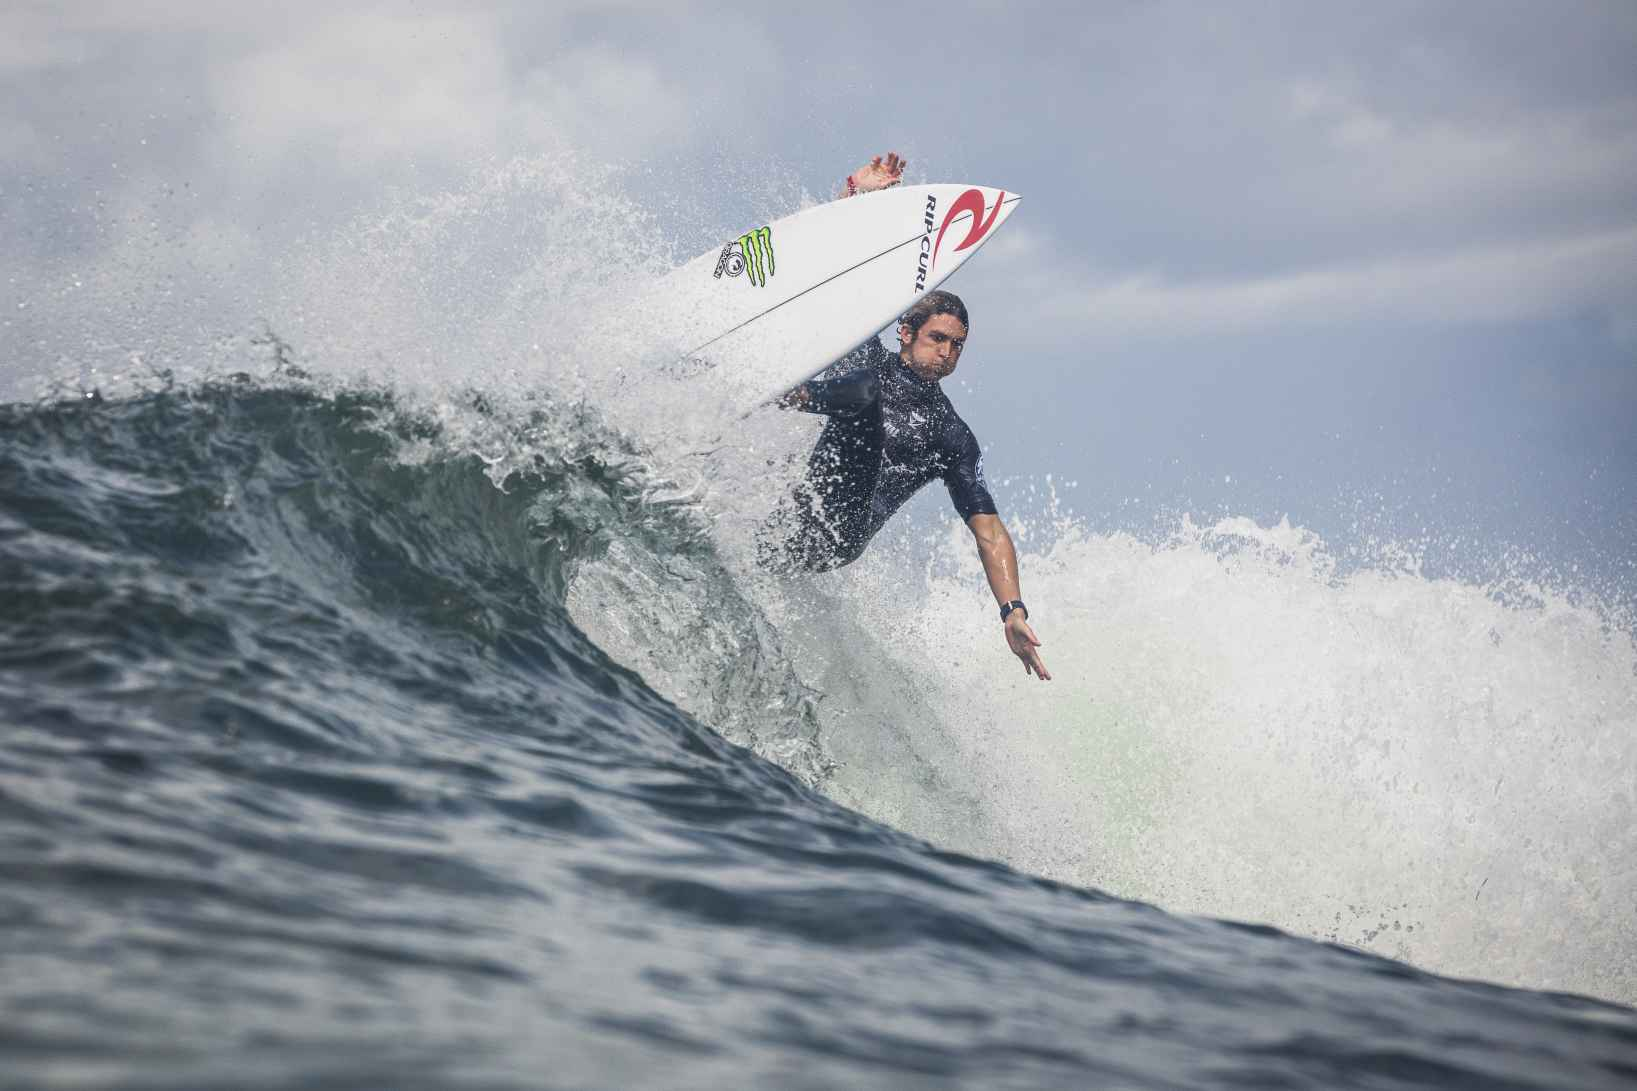 wsl rip curl newcastle cup Crosby Colapinto7326Newcastle21Meirs